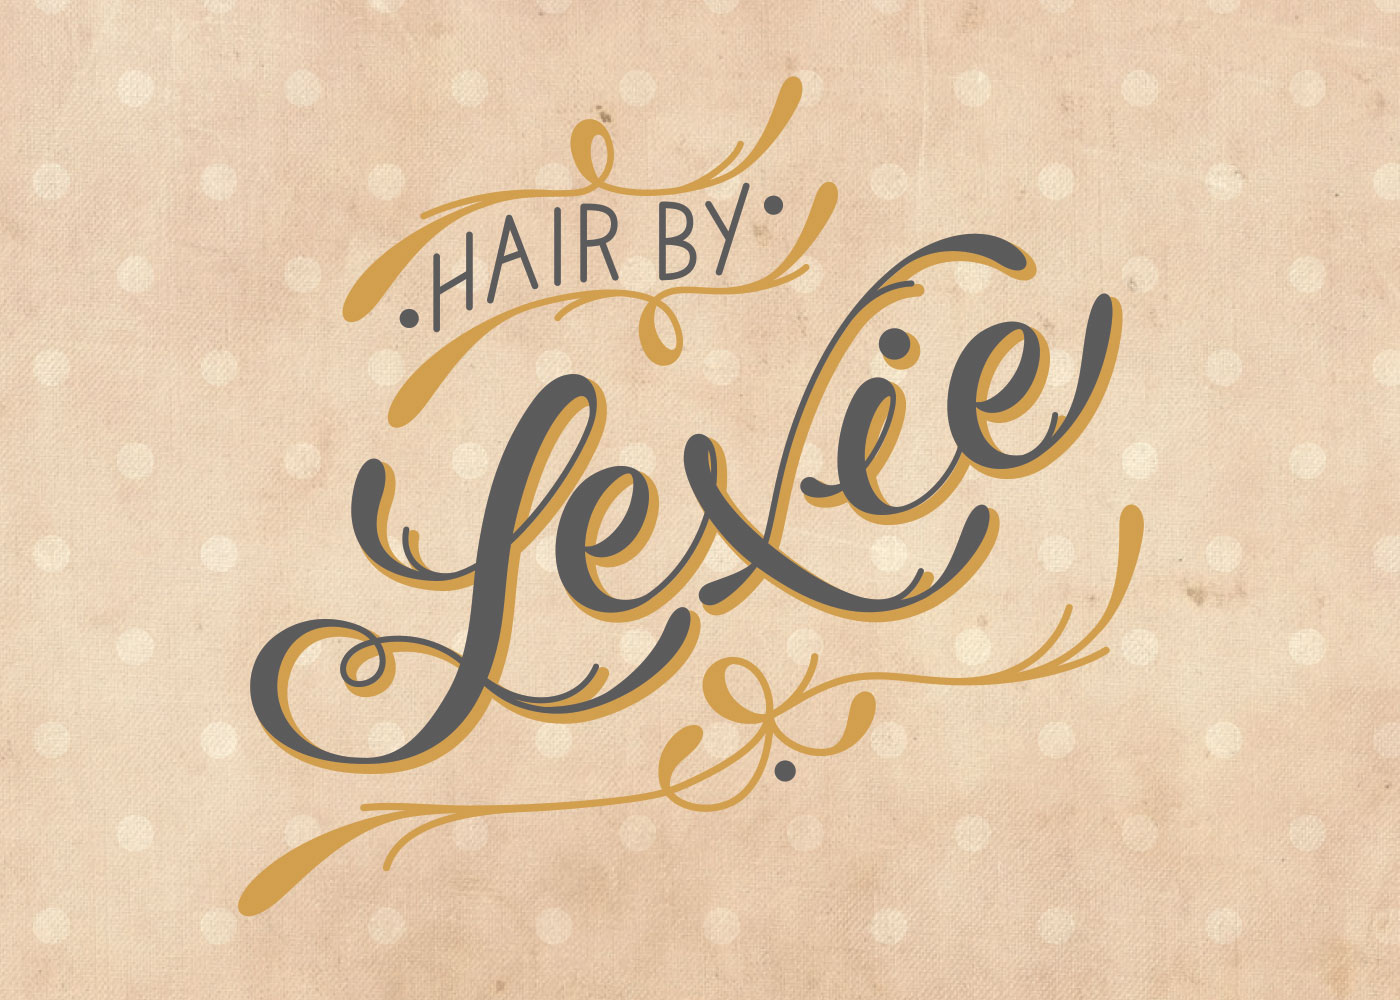 hair by lexie hair salon branding